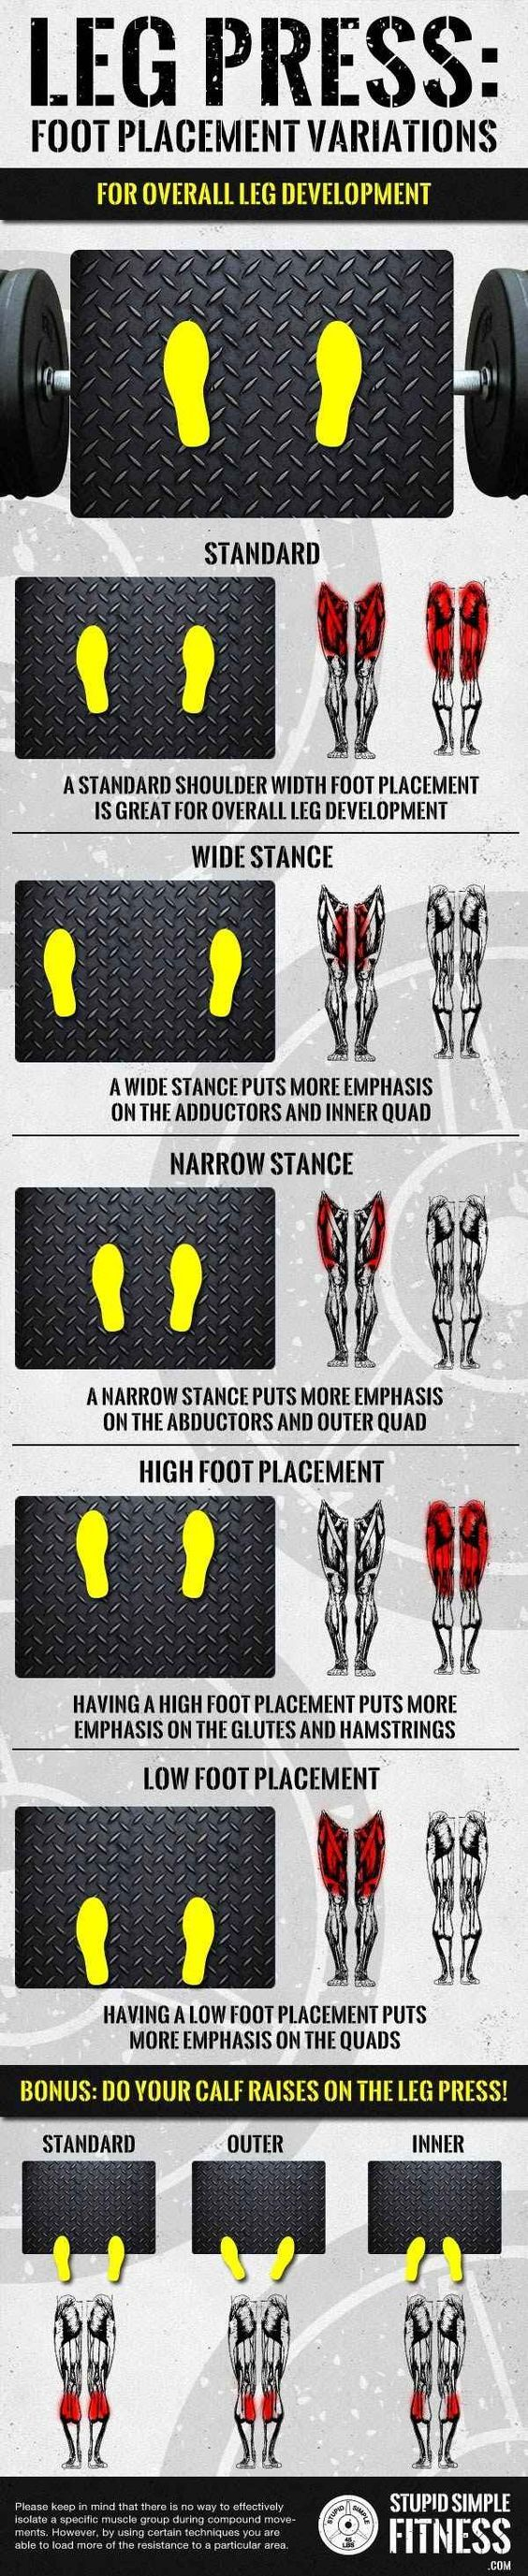 Foot Placement Variations On The Leg Press - By Danny Ajini From Stupid Simple Fitness   Glamour Shots